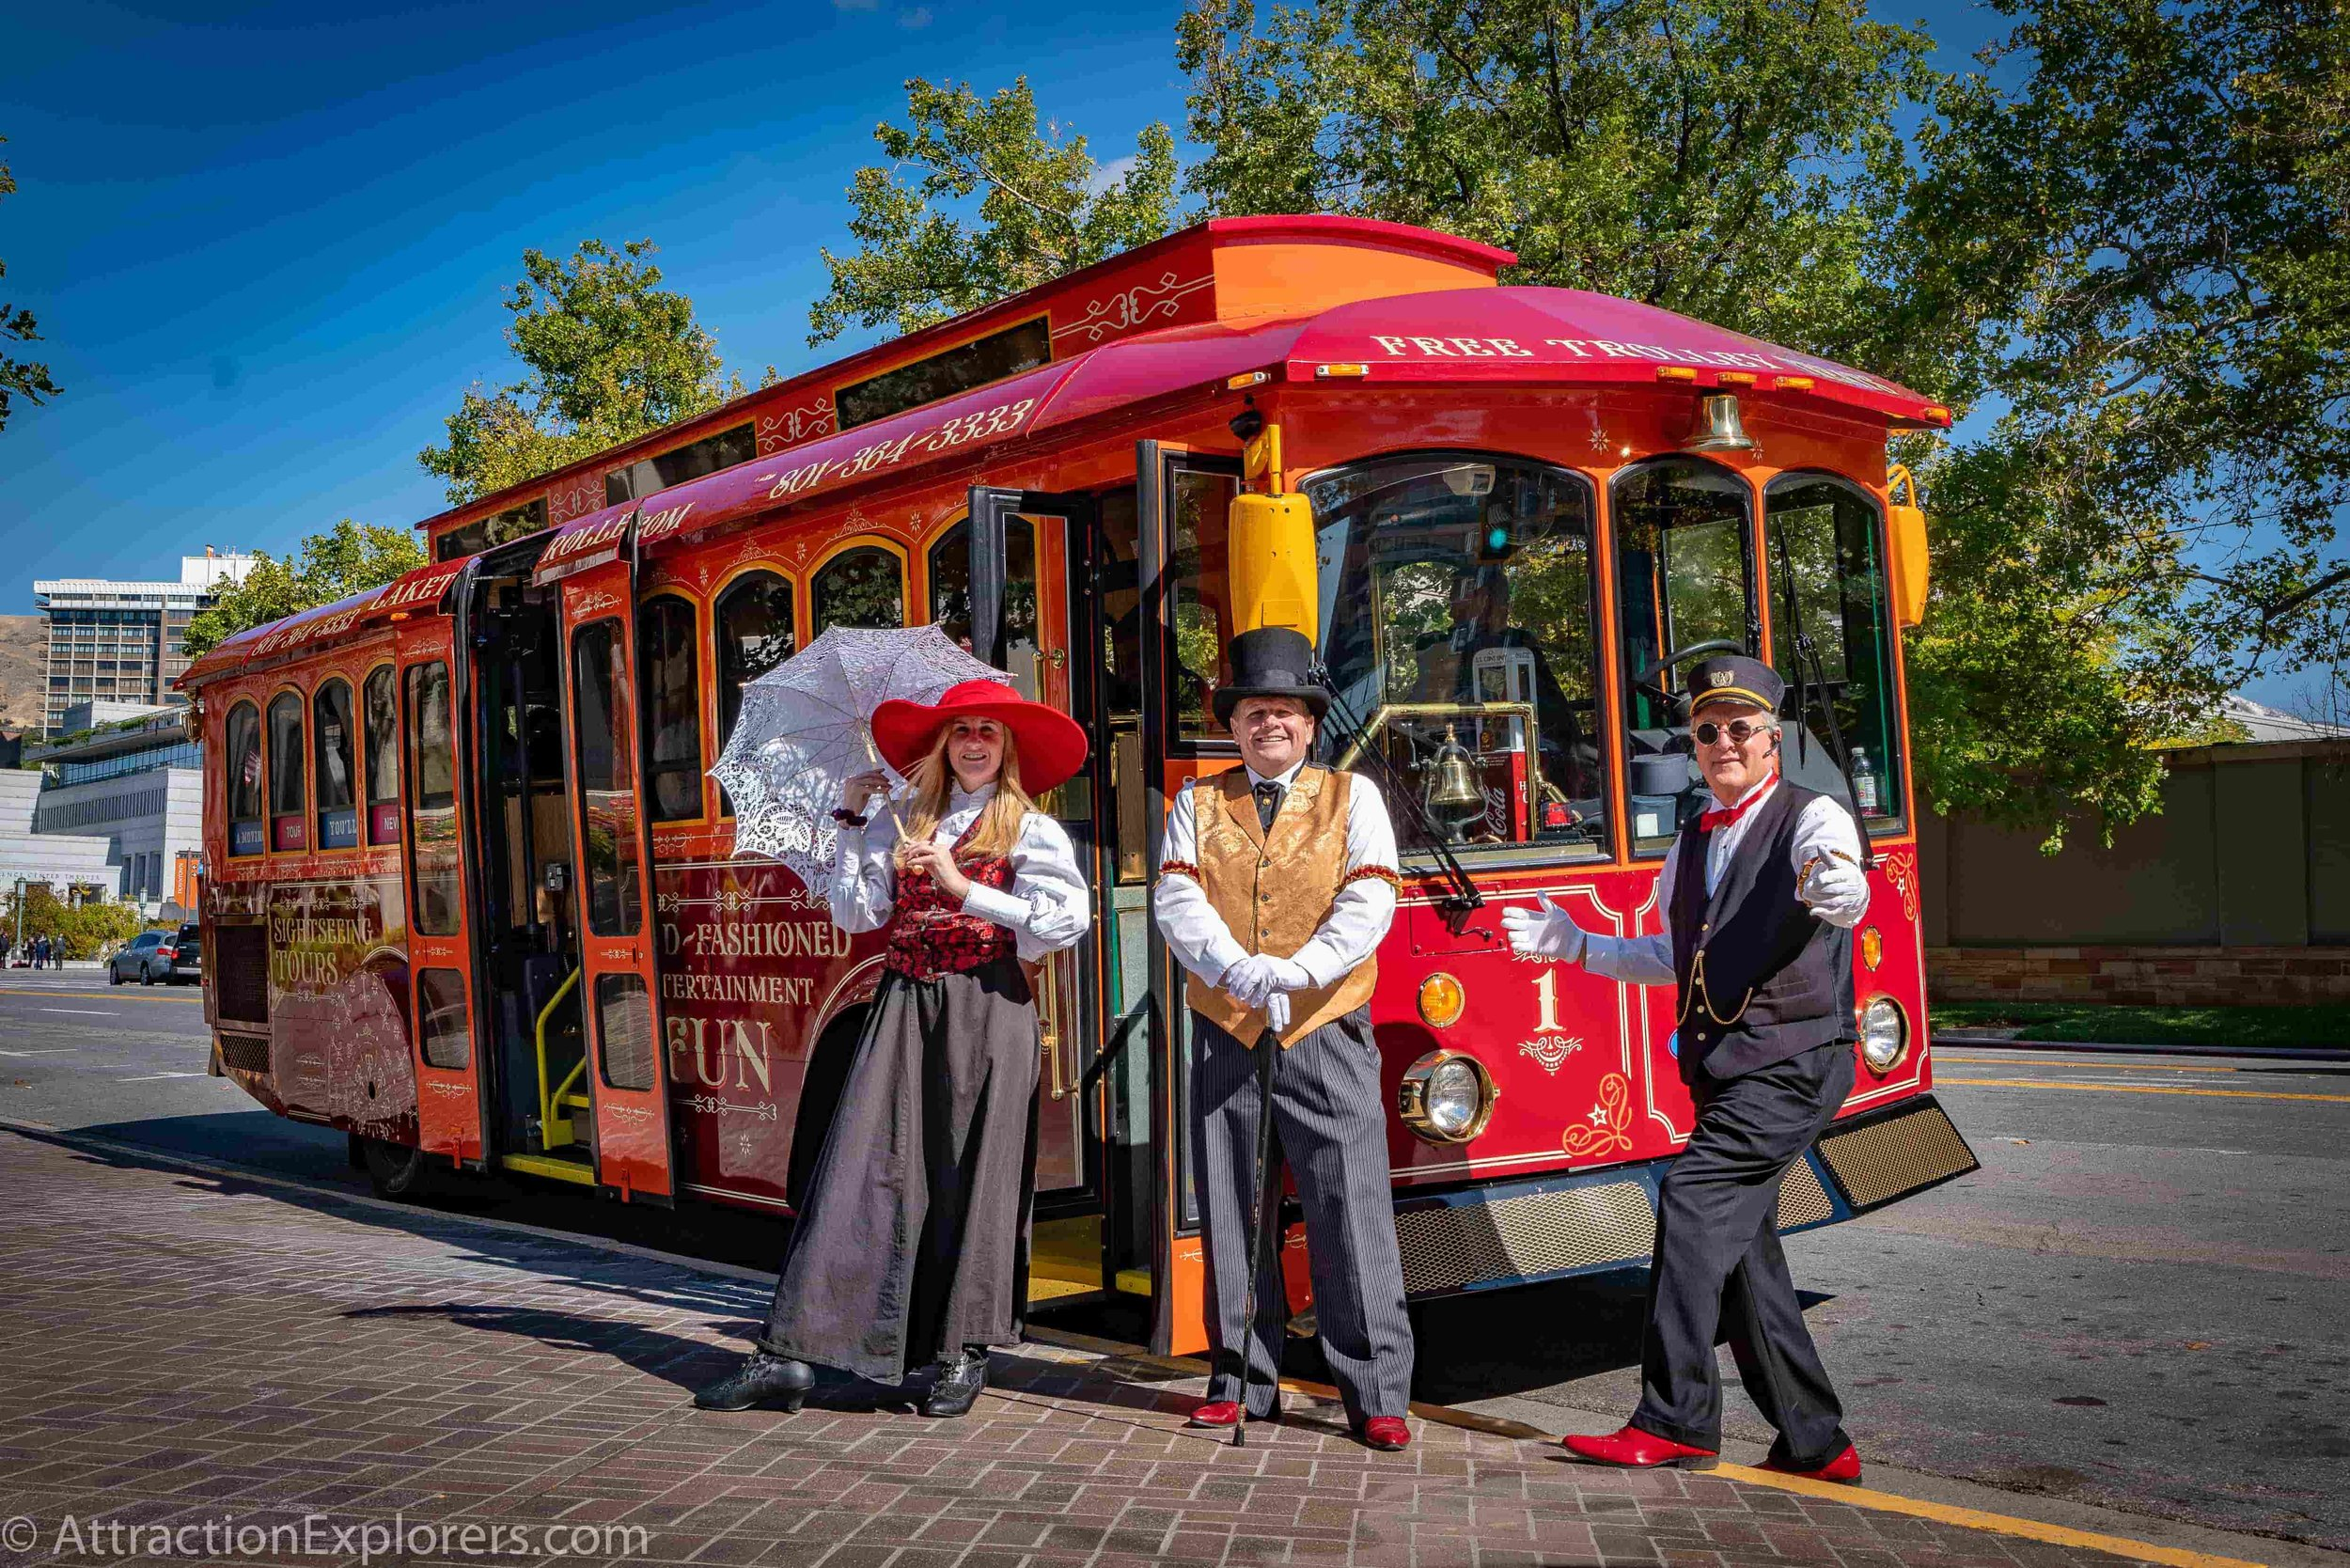 $29 - Trolley Adventure Tour